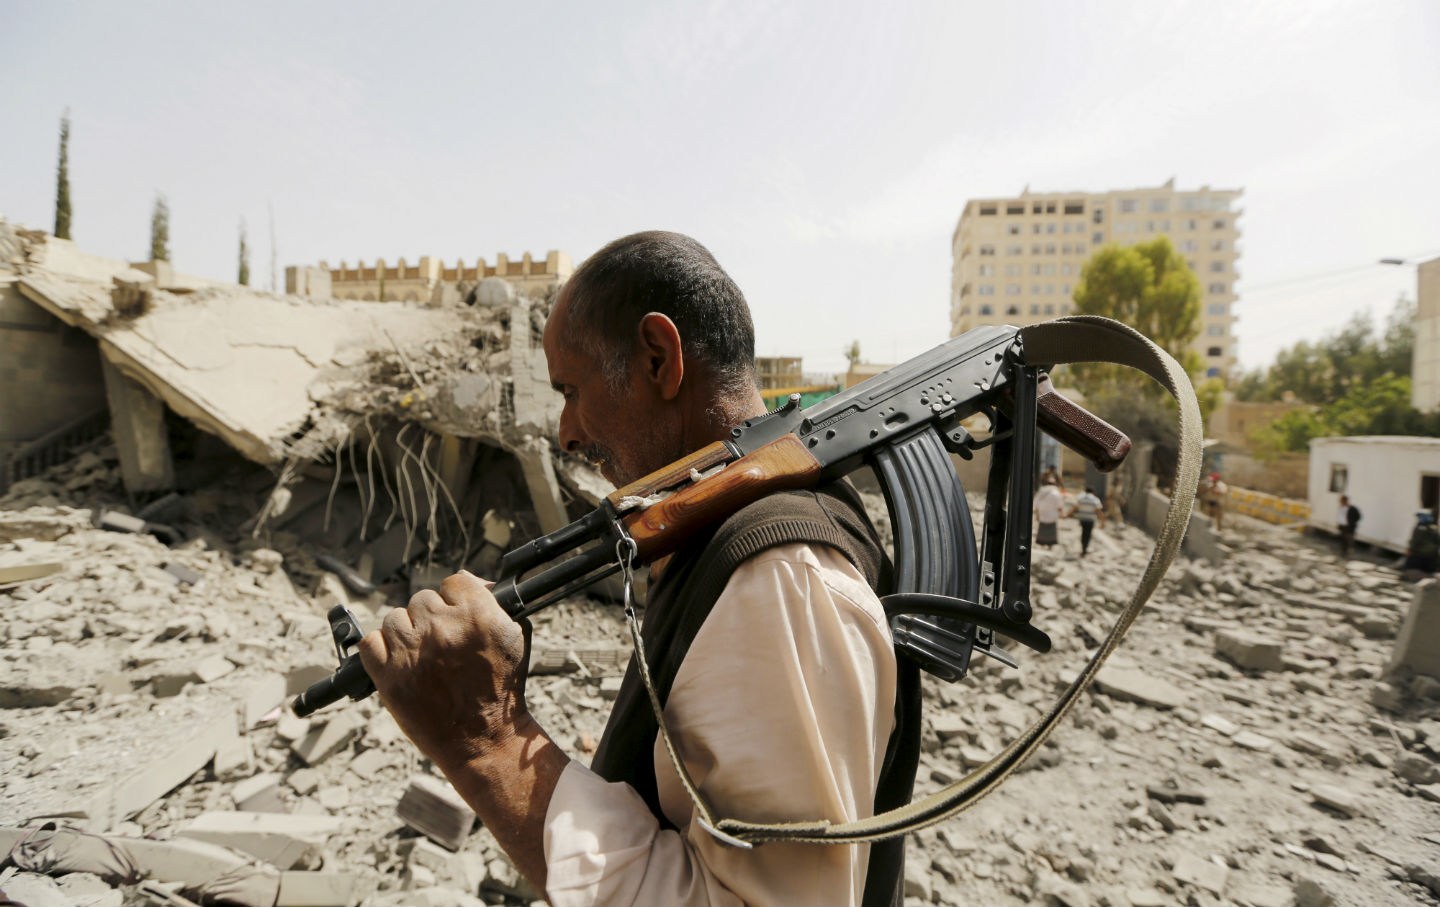 A guard in Sanaa, Yemen